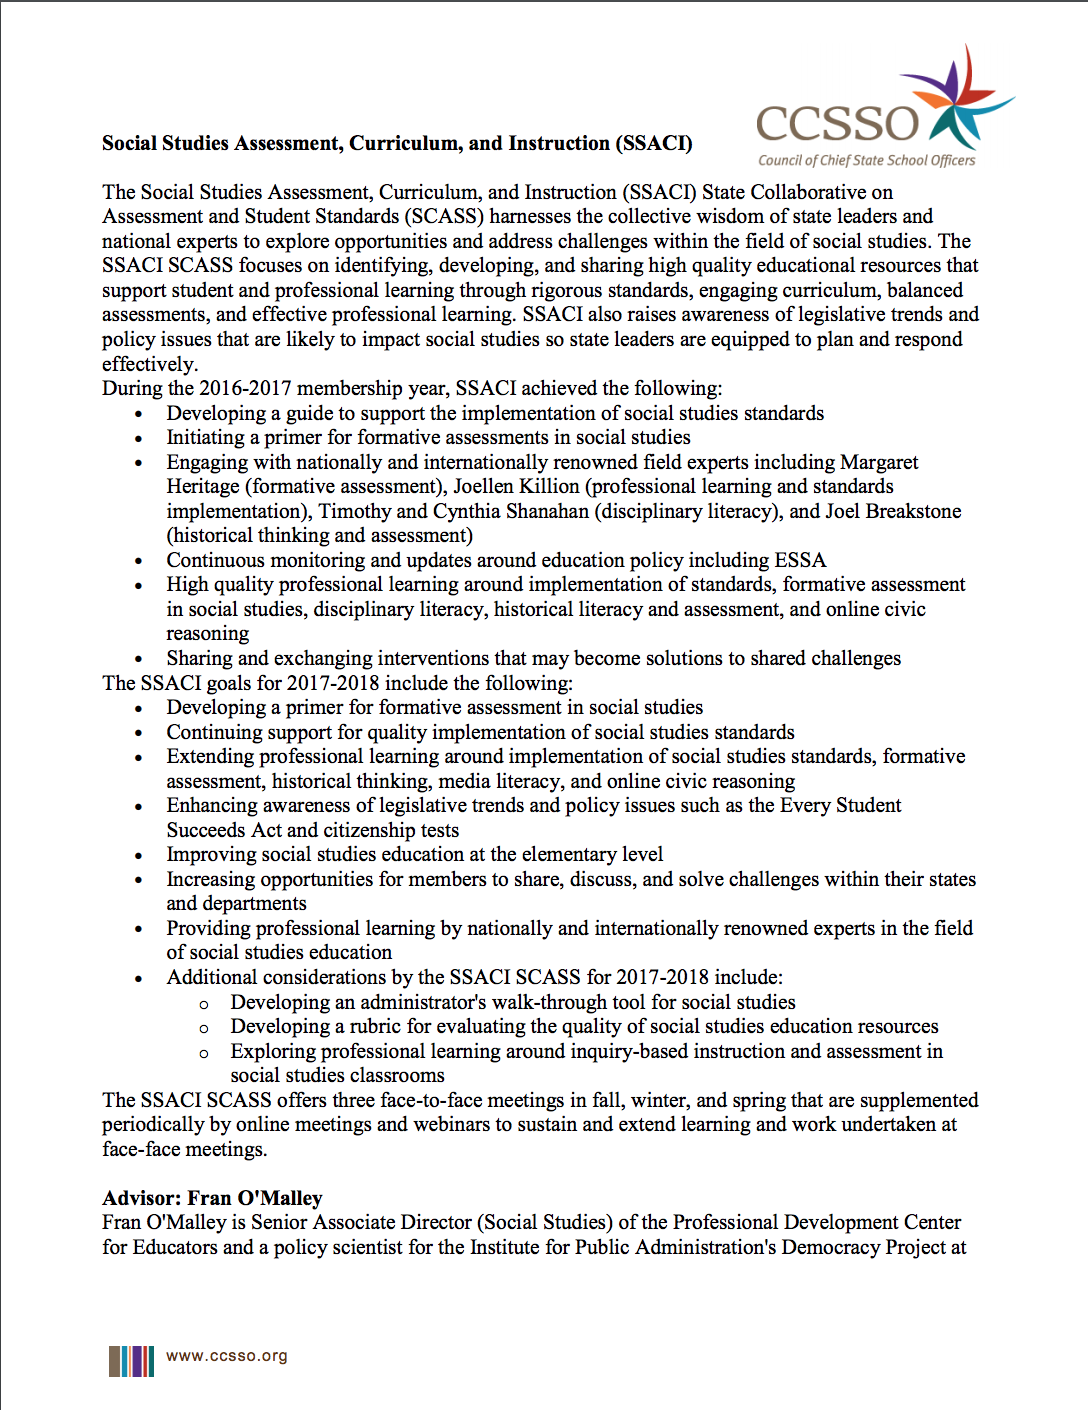 Social Studies Assessment, Curriculum, and Instruction page 1